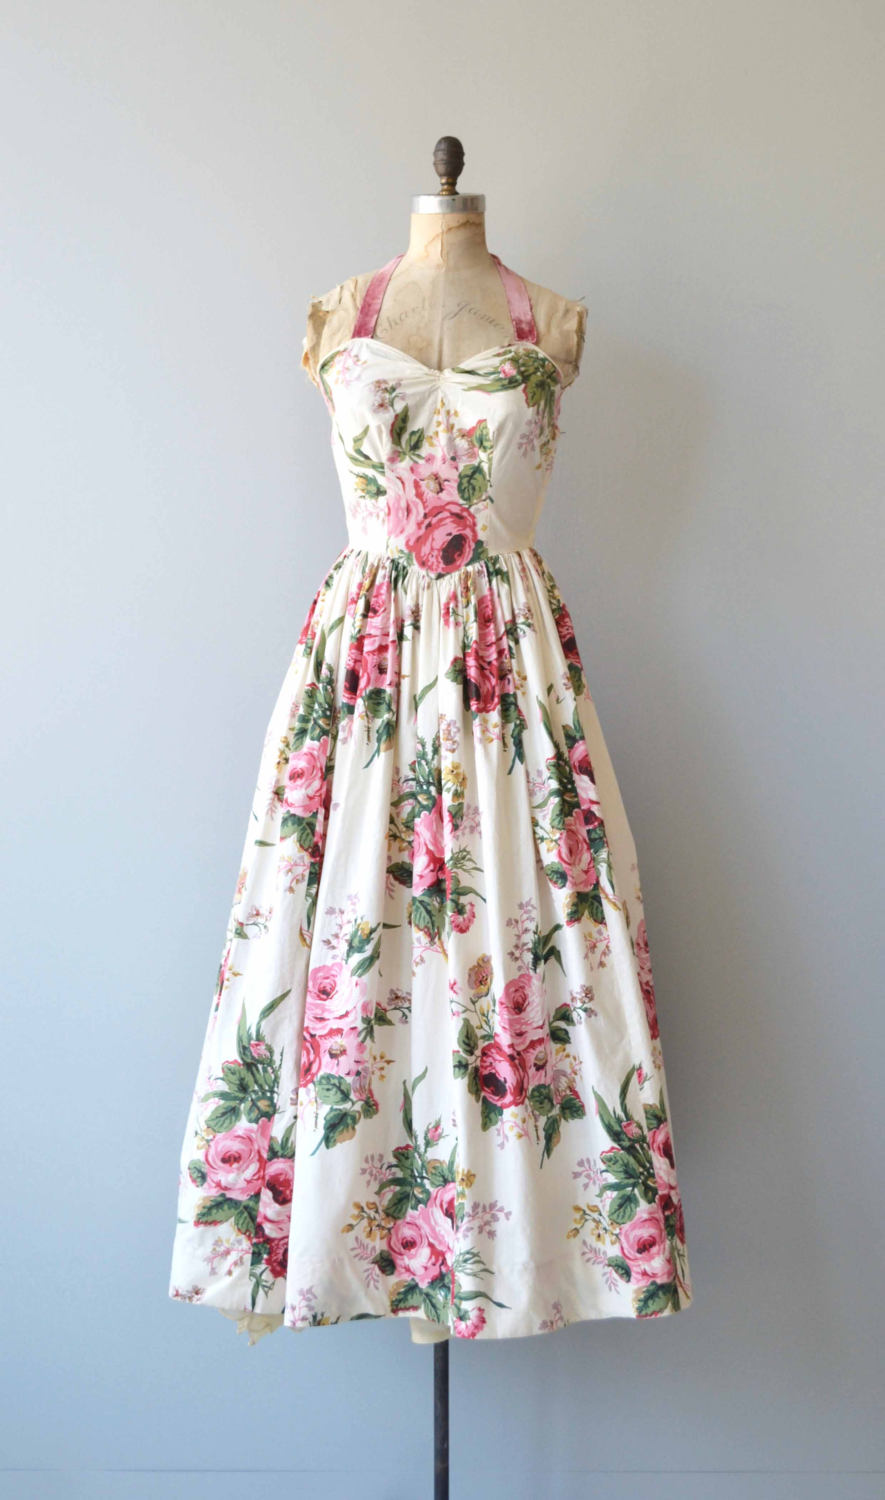 1940s Rose Printed Floor Length Cotton Dress via Etsy